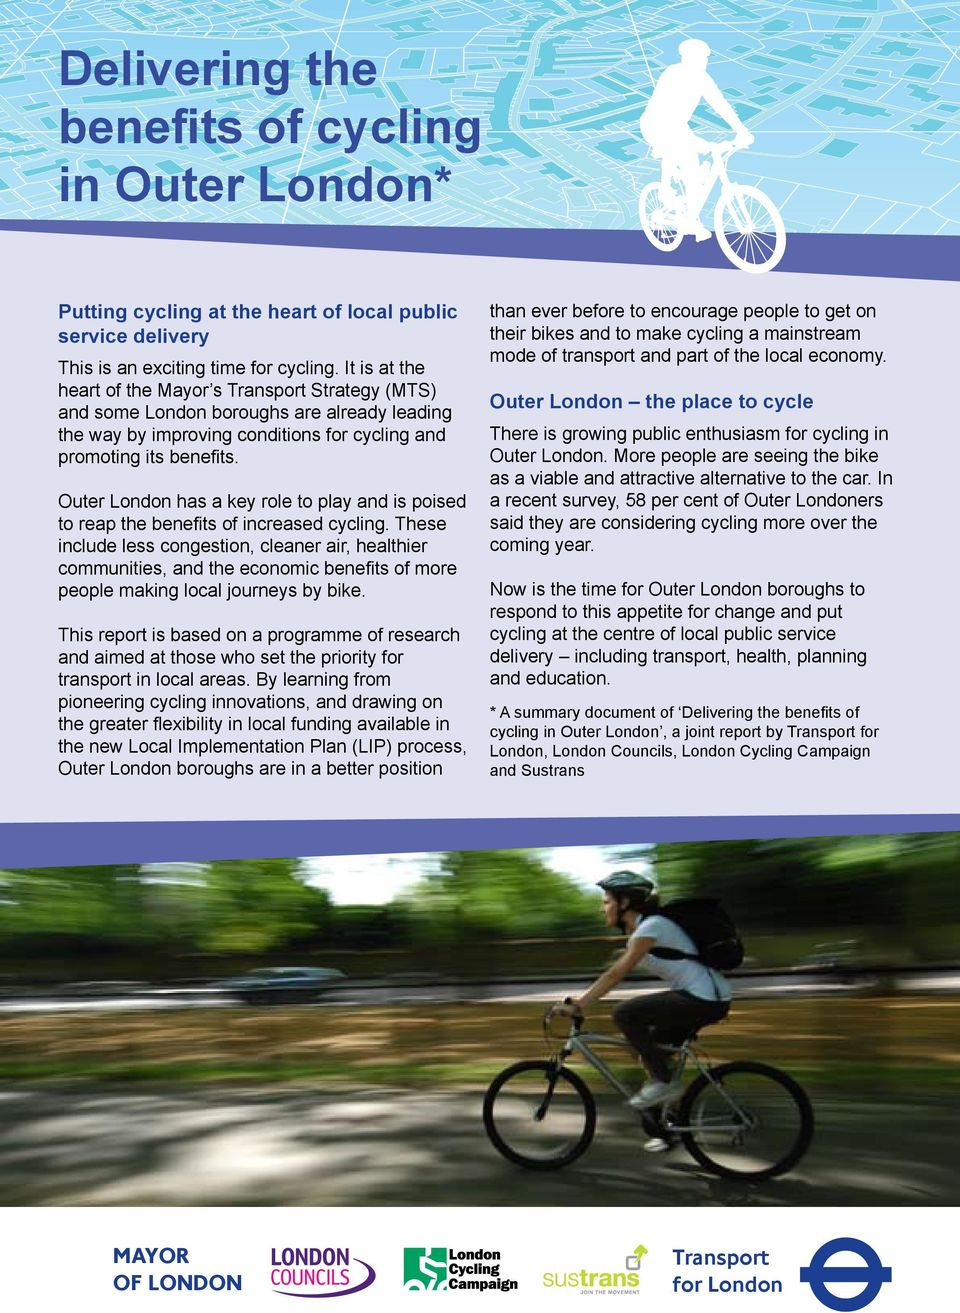 Outer London has a key role to play and is poised to reap the benefits of increased cycling.